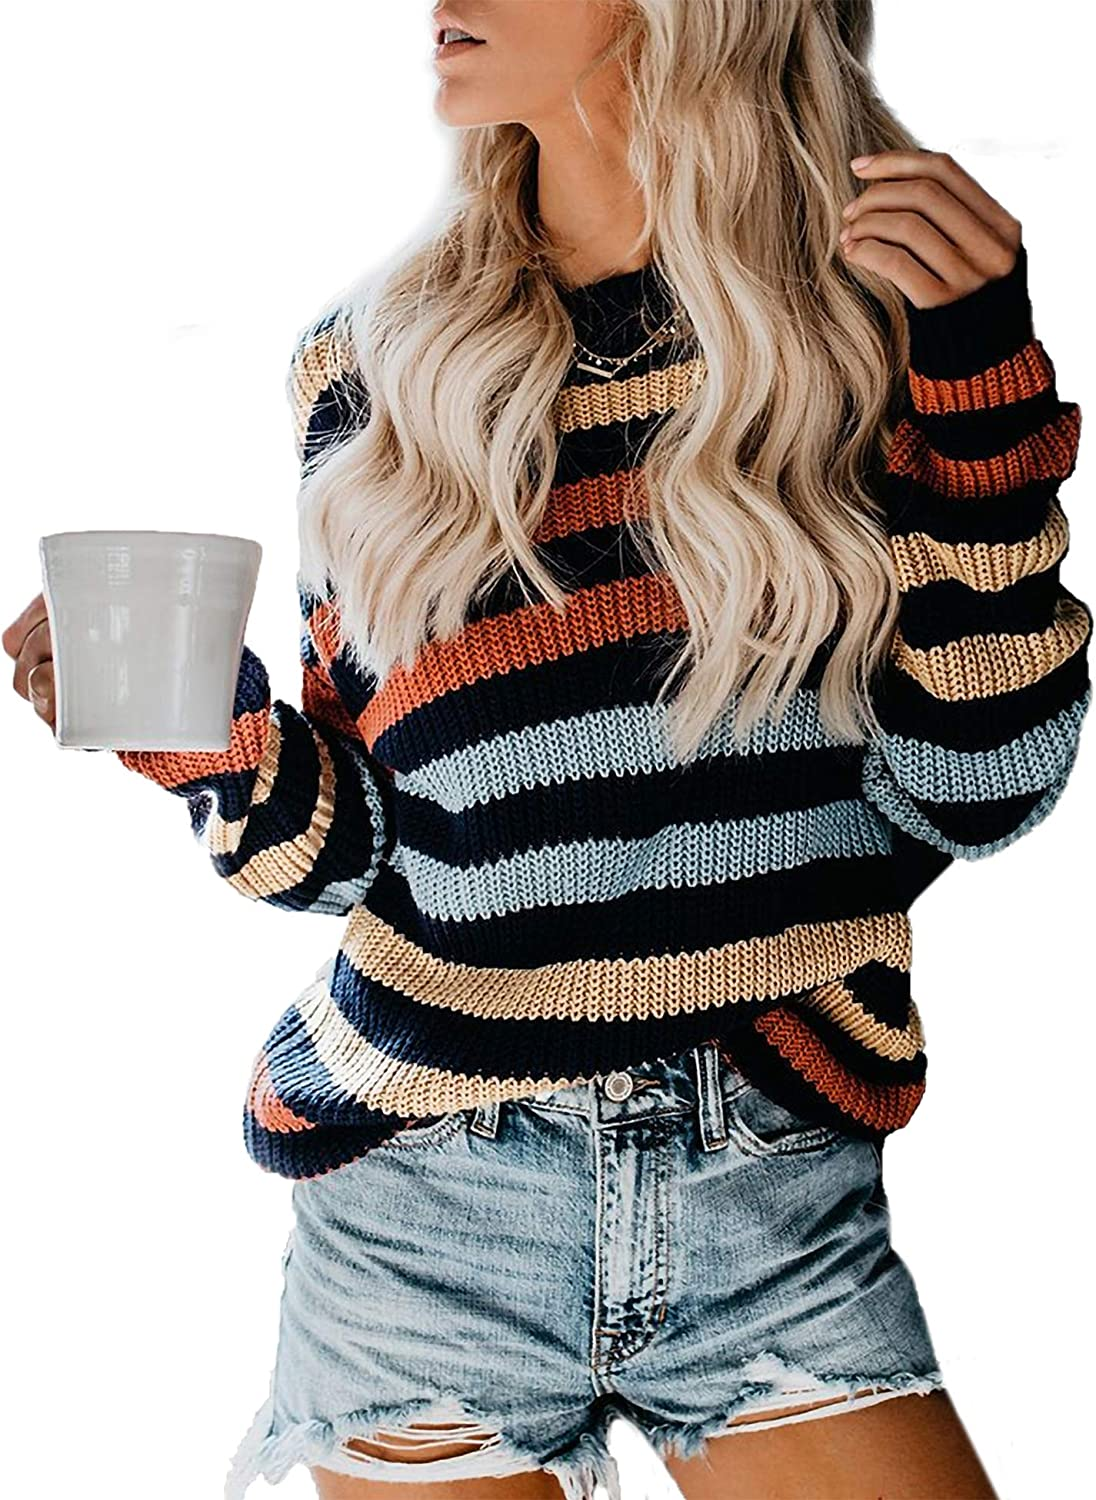 Relipop Women's Knitwear Pullover Crewneck Drop Shoulder Rainbow Color Block Stripe Lightweight Cable Knit Jumper Sweater